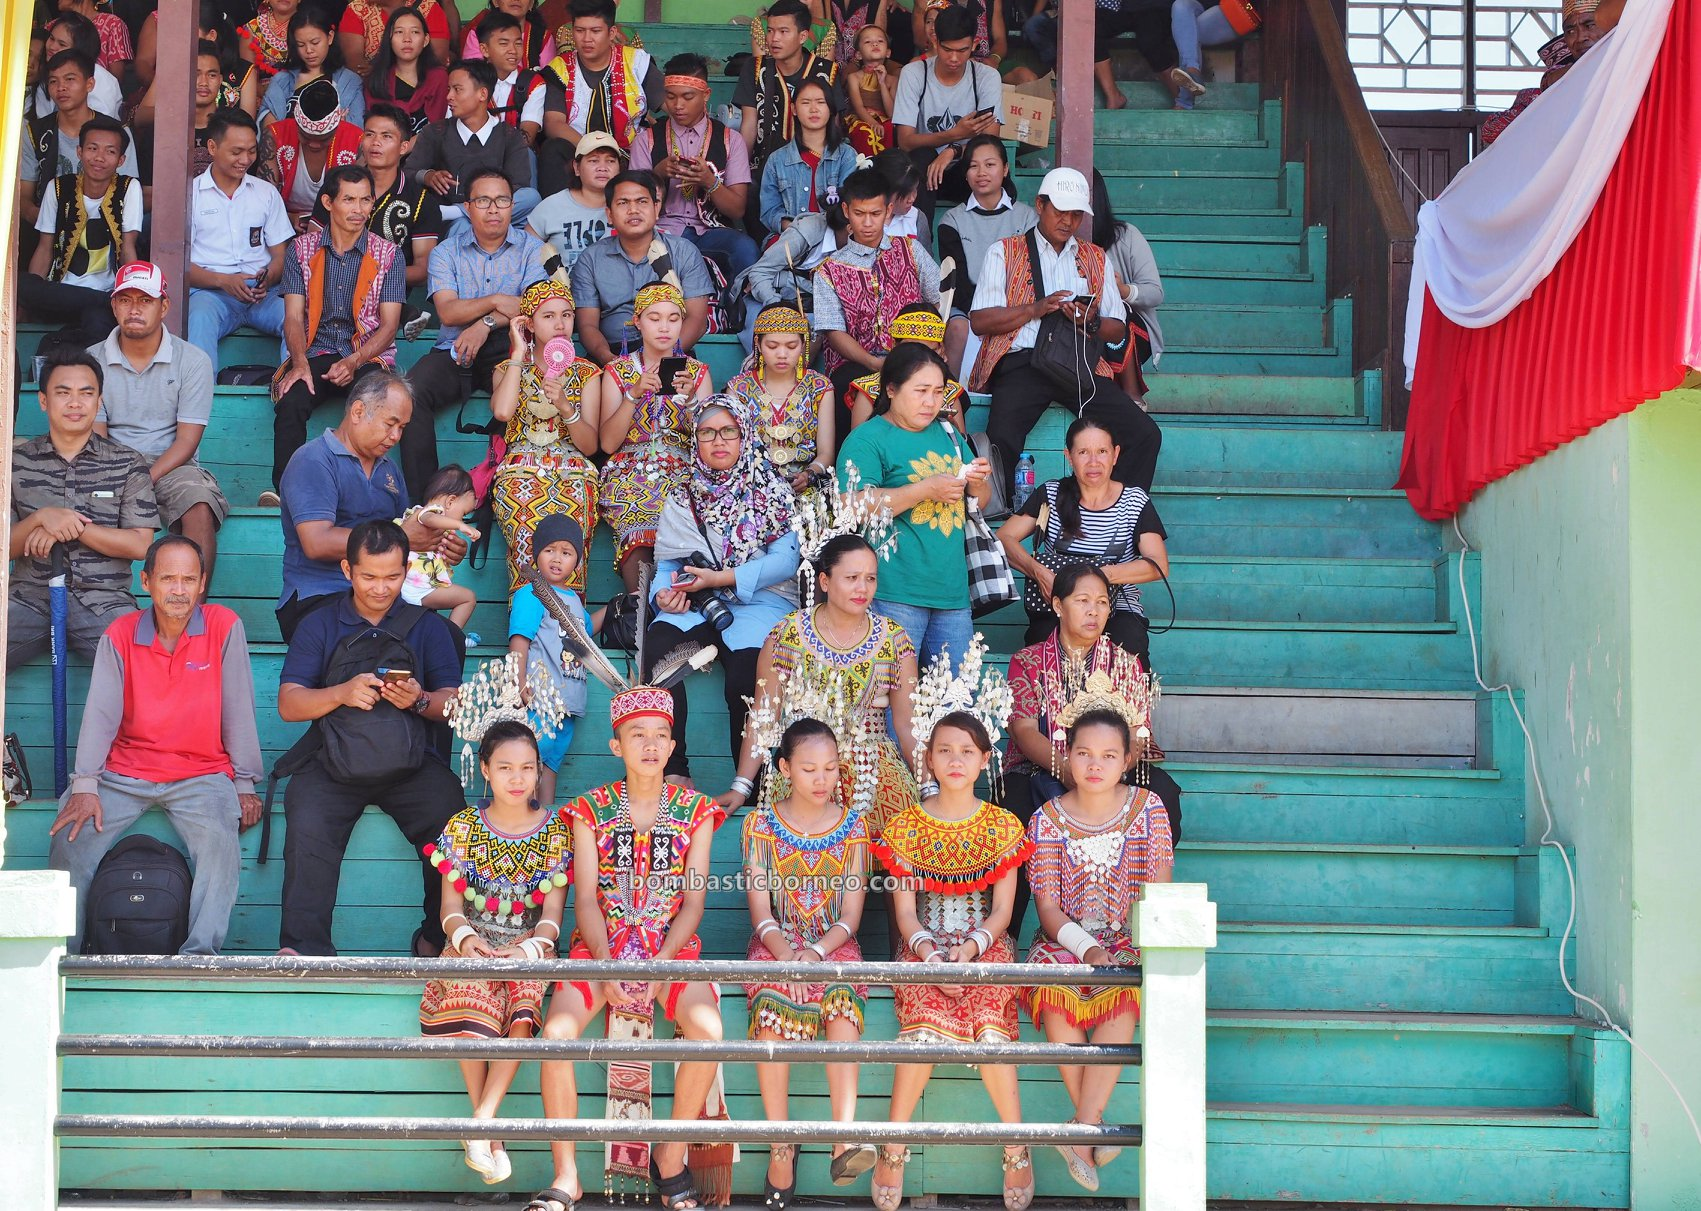 Gawai Padi, Putussibau, traditional, budaya, Indonesia, West Kalimantan, destination, native, tribe, Obyek wisata, Tourism, travel guide, 婆罗洲富都丰收节日, 西加里曼丹旅游景点, 原住民达雅克部落,